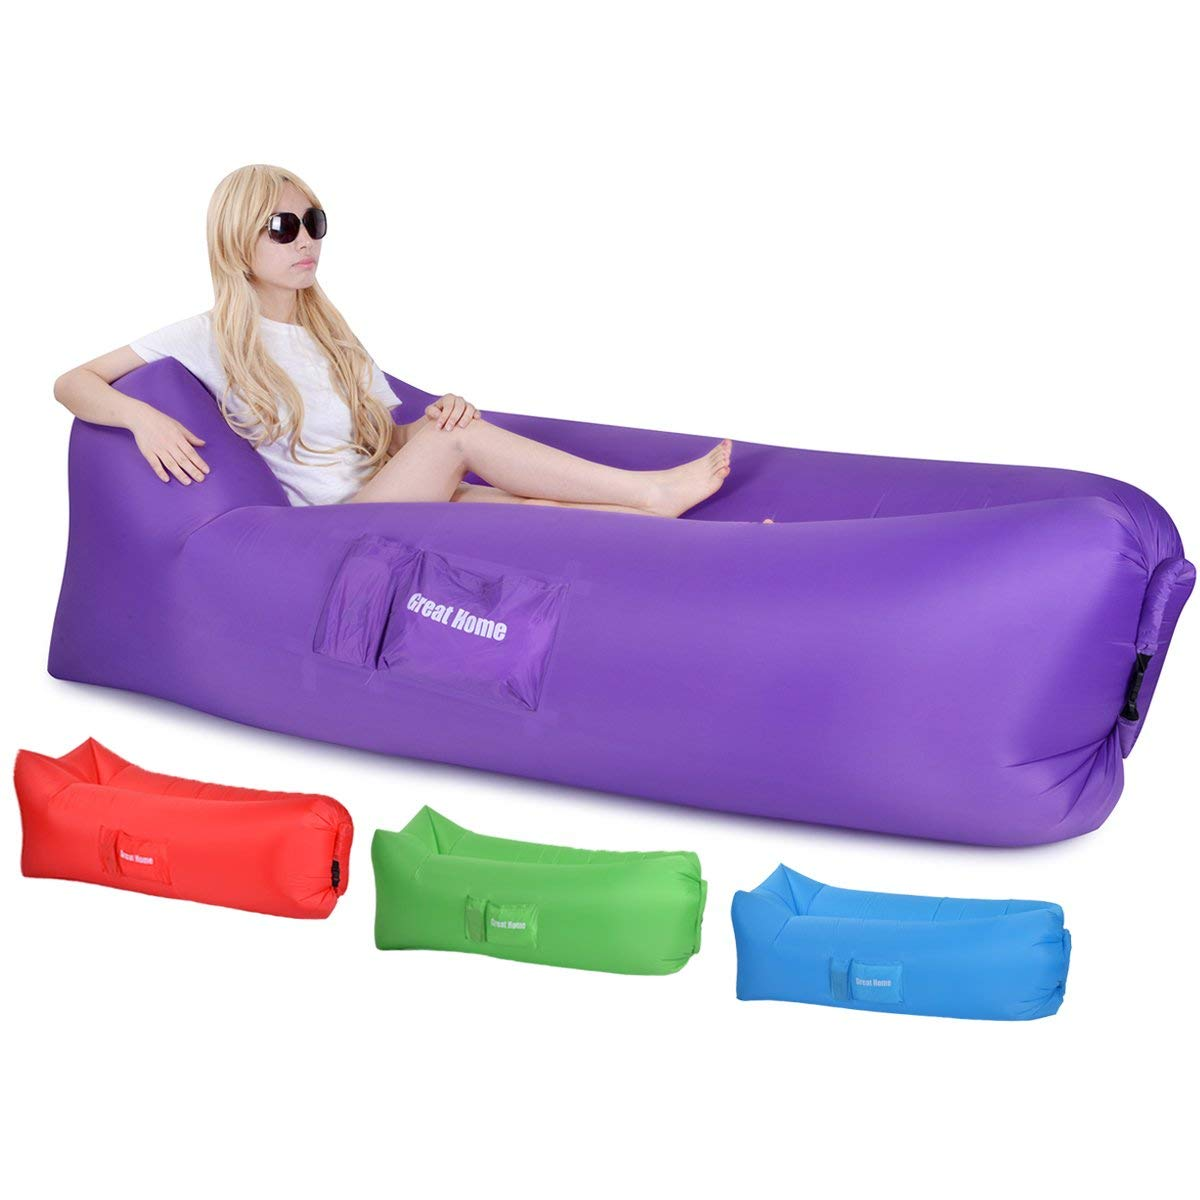 Cheap Lounger Sofa India Find Lounger Sofa India Deals On Line At